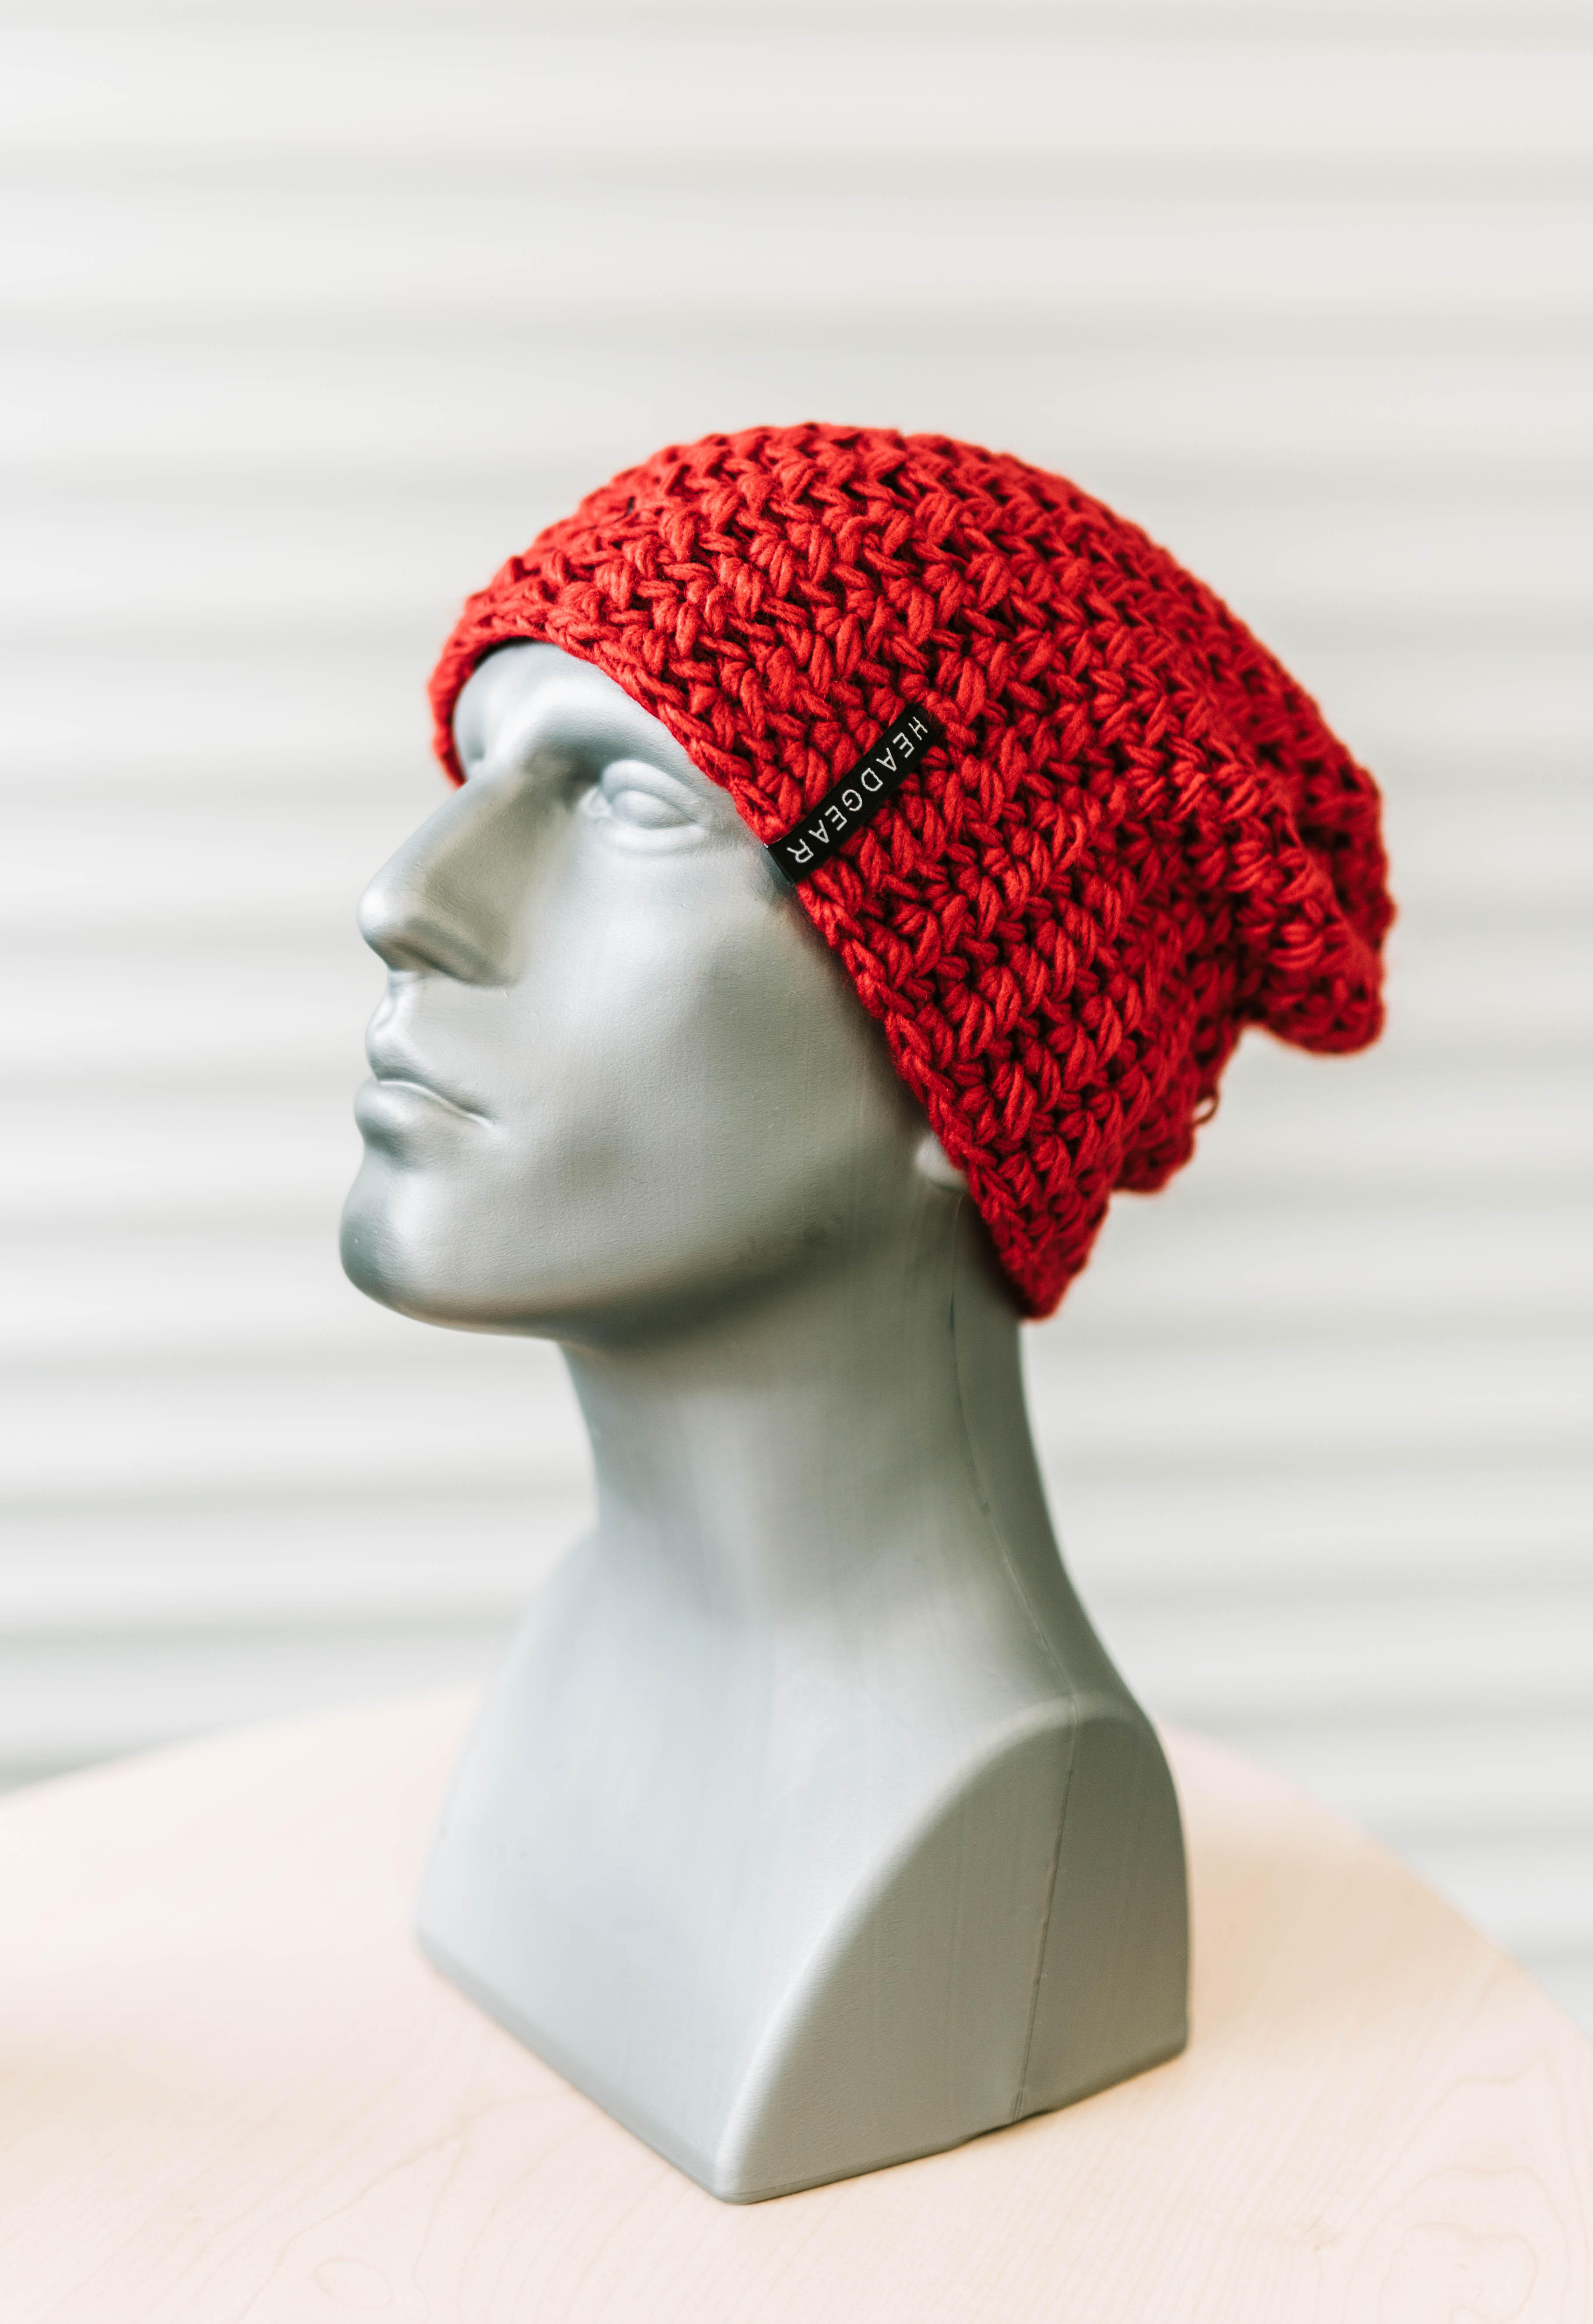 CASUAL OUTSIZE CROCHETED CAP